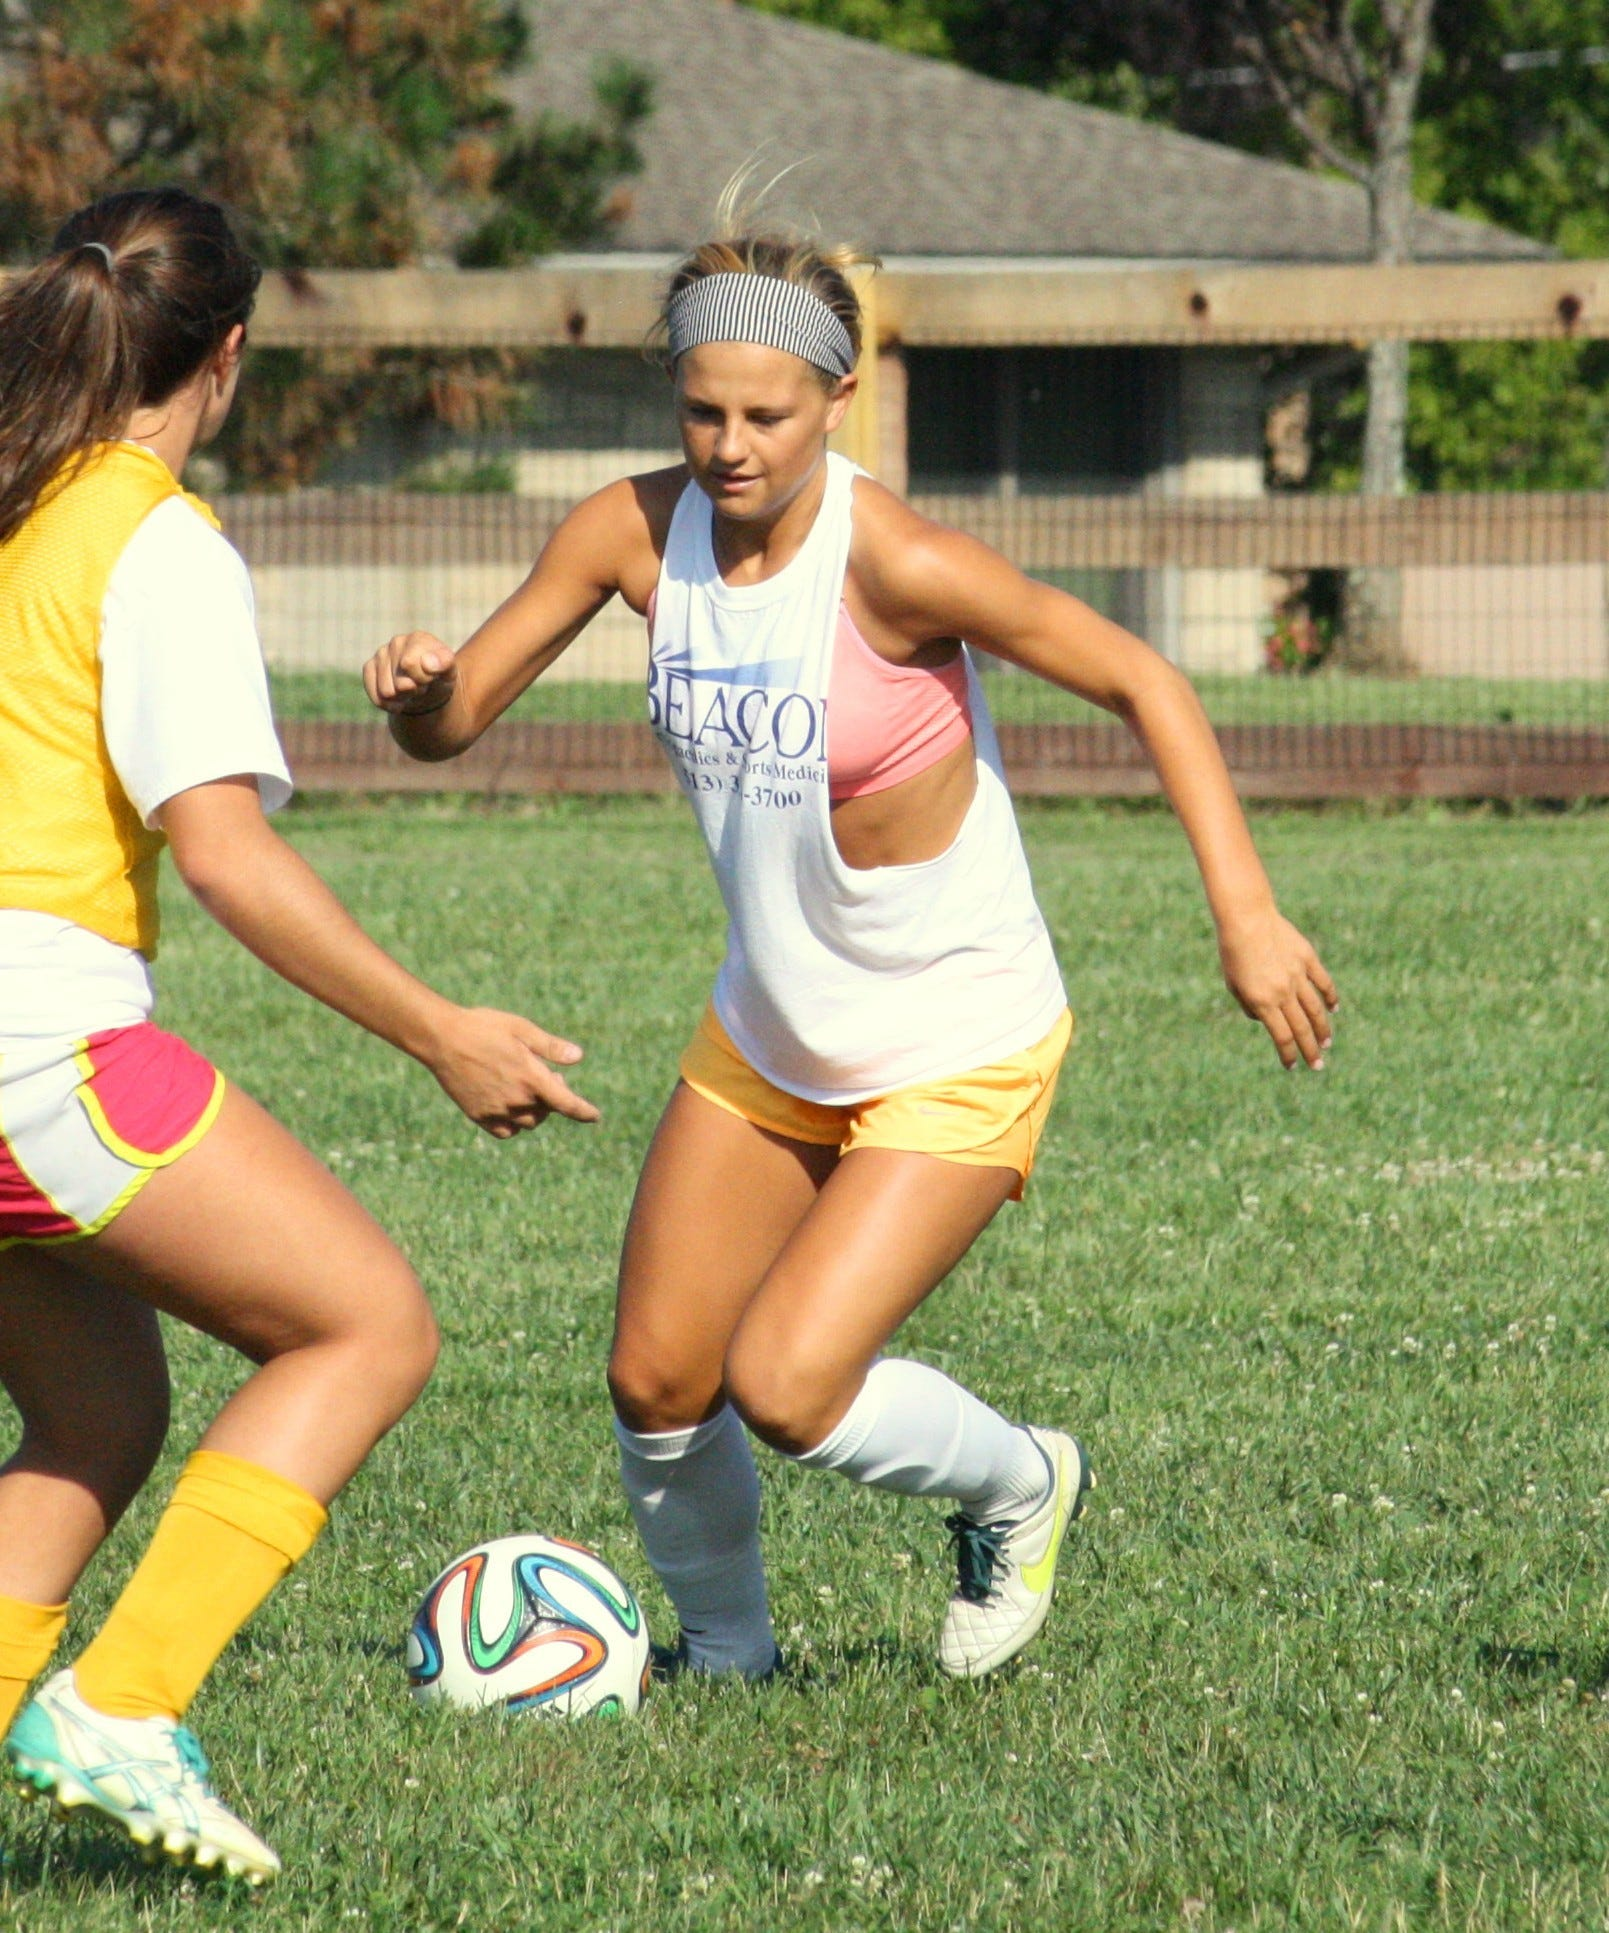 Oak Hills High School senior Bayley Feist dribbles through her defenders during a preseason practice at Rapid Run Middle School Aug. 13. Feist scored three goals and dished out four assists in just eight games last season before going down with an injury.